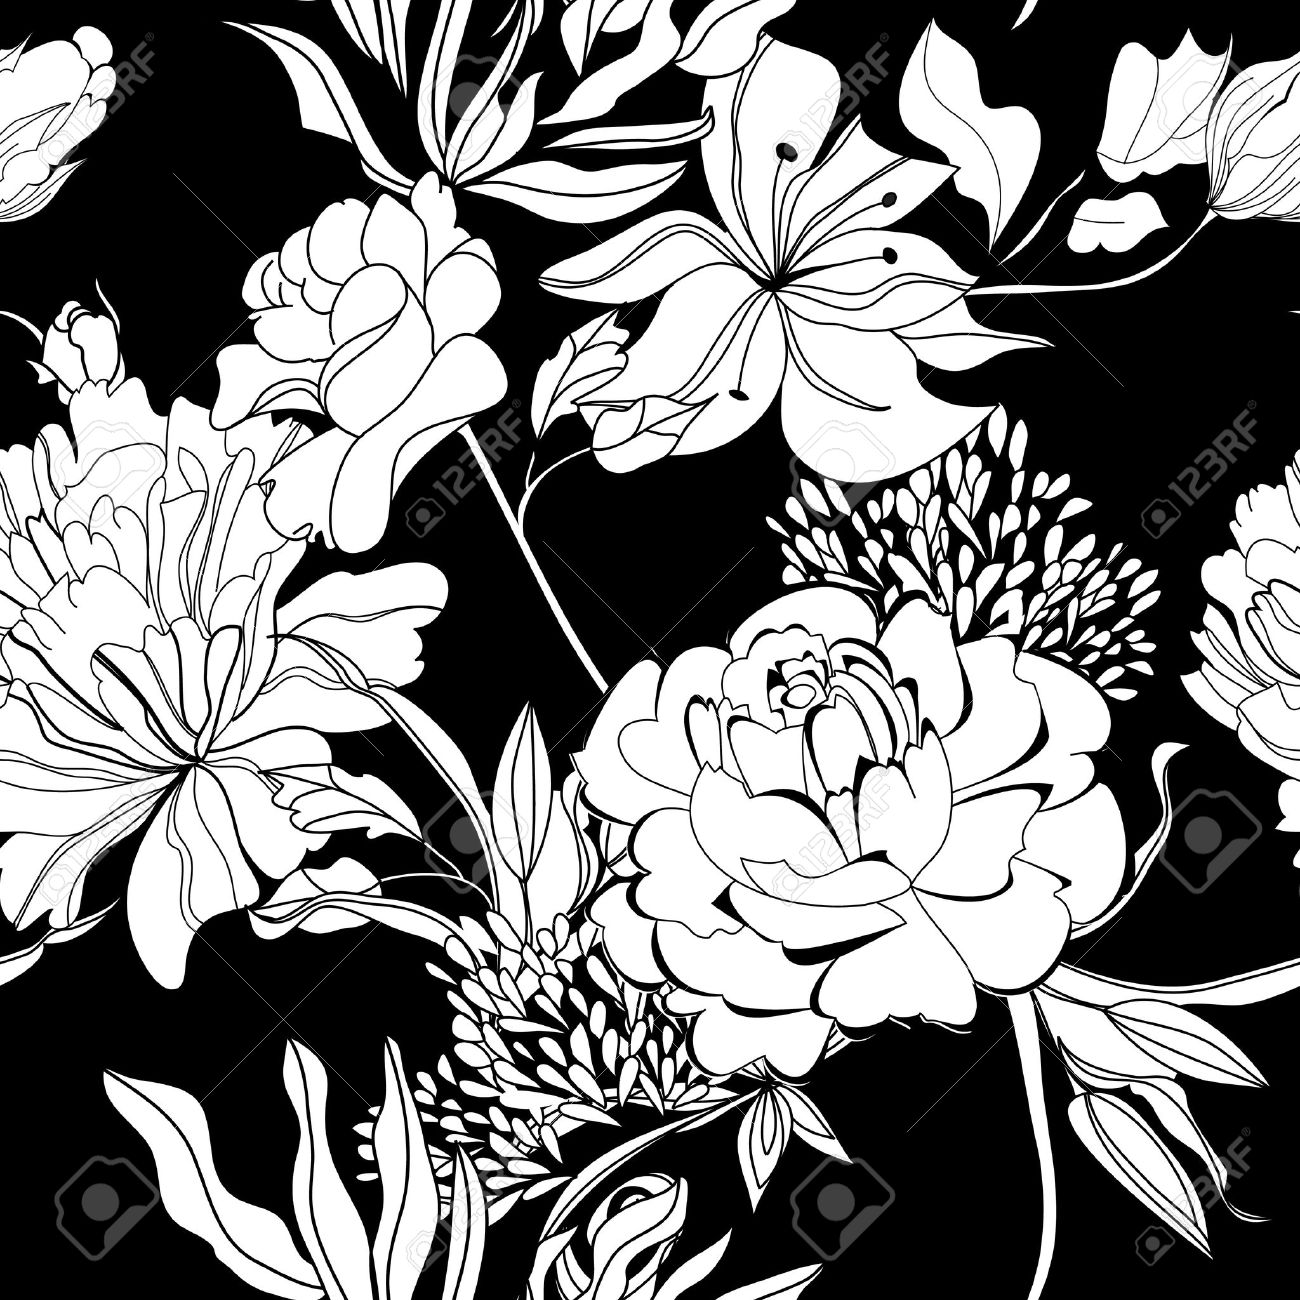 decorative seamless wallpaper with white flowers on black background stock vector - Black And White Flowers